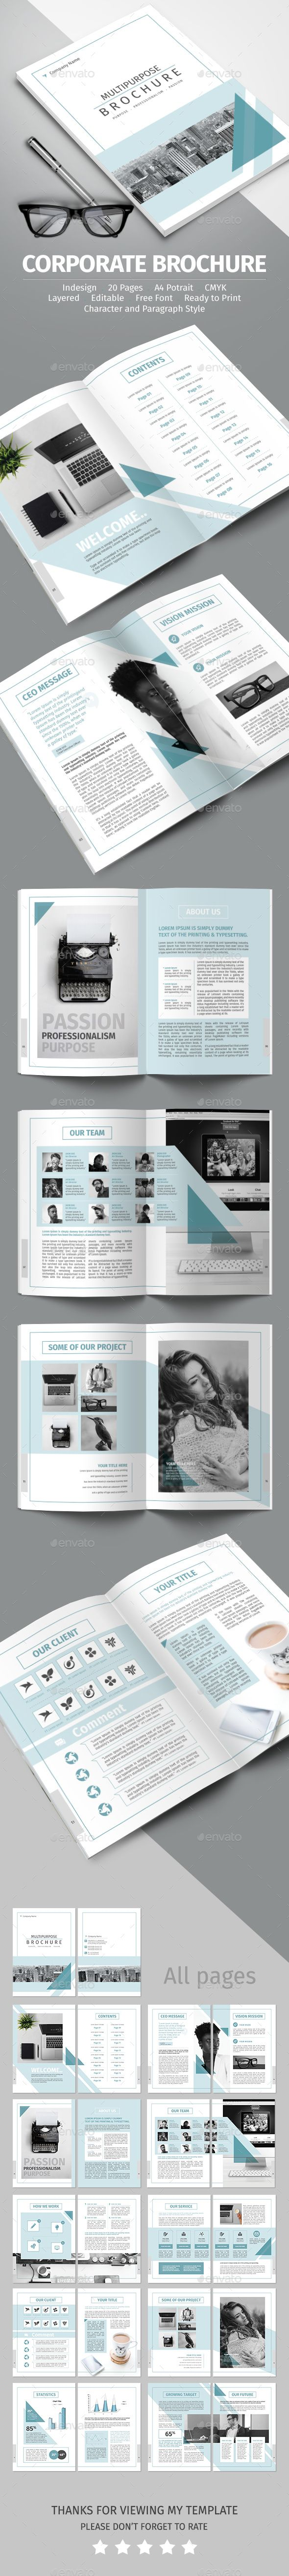 20 Pages Corporate Brochure Template Vector EPS, InDesign INDD ...